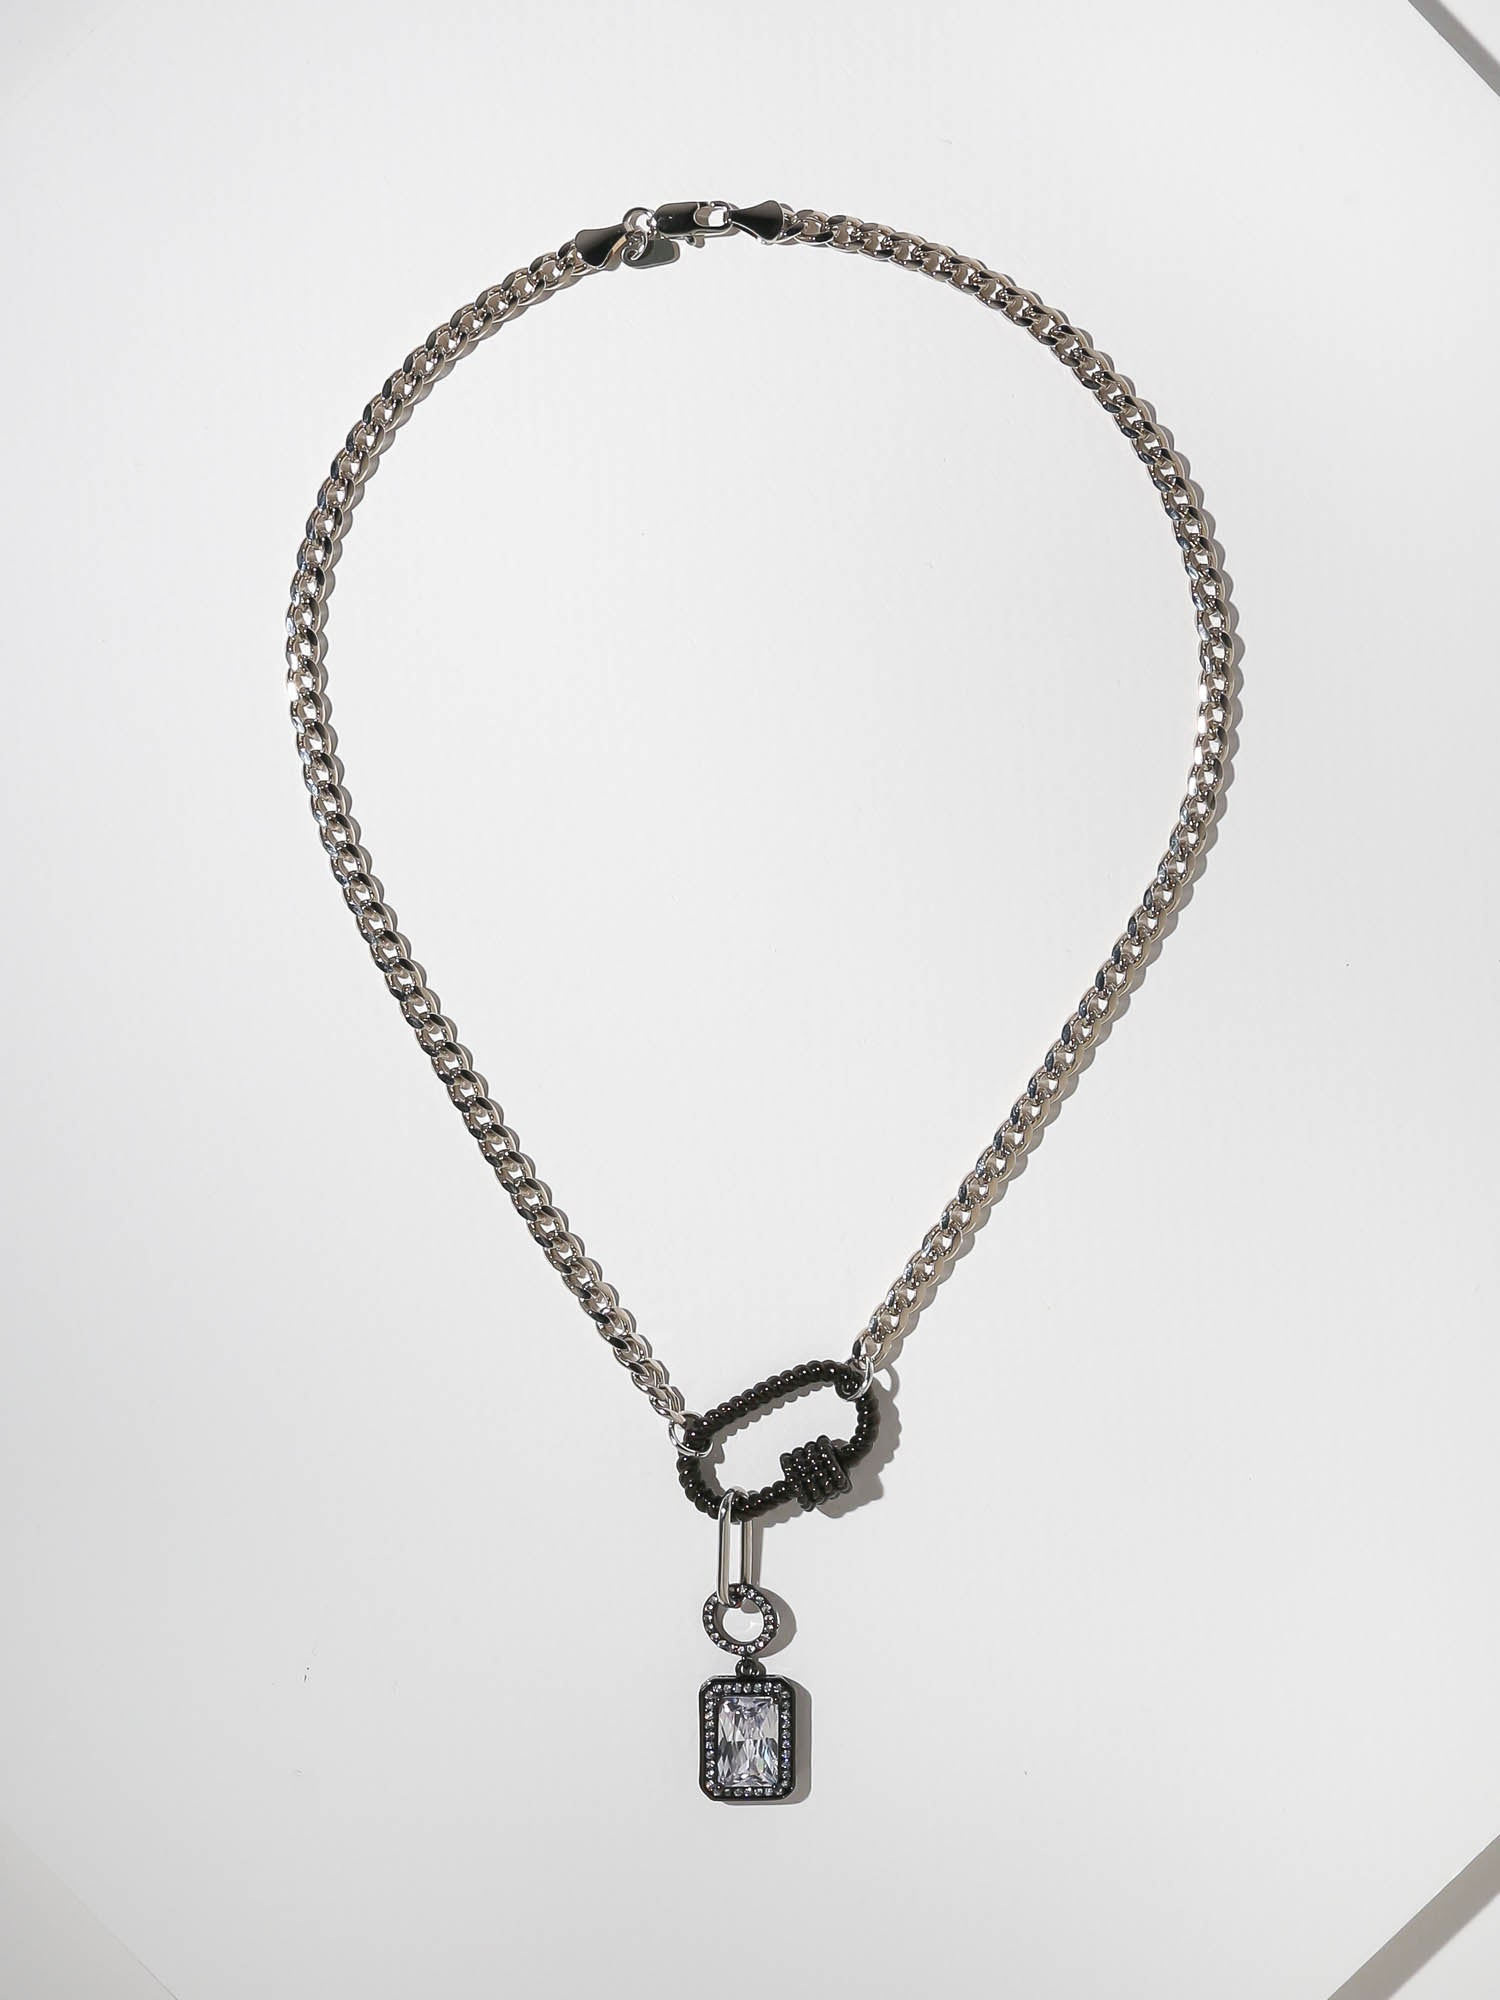 The Kalessi Necklace